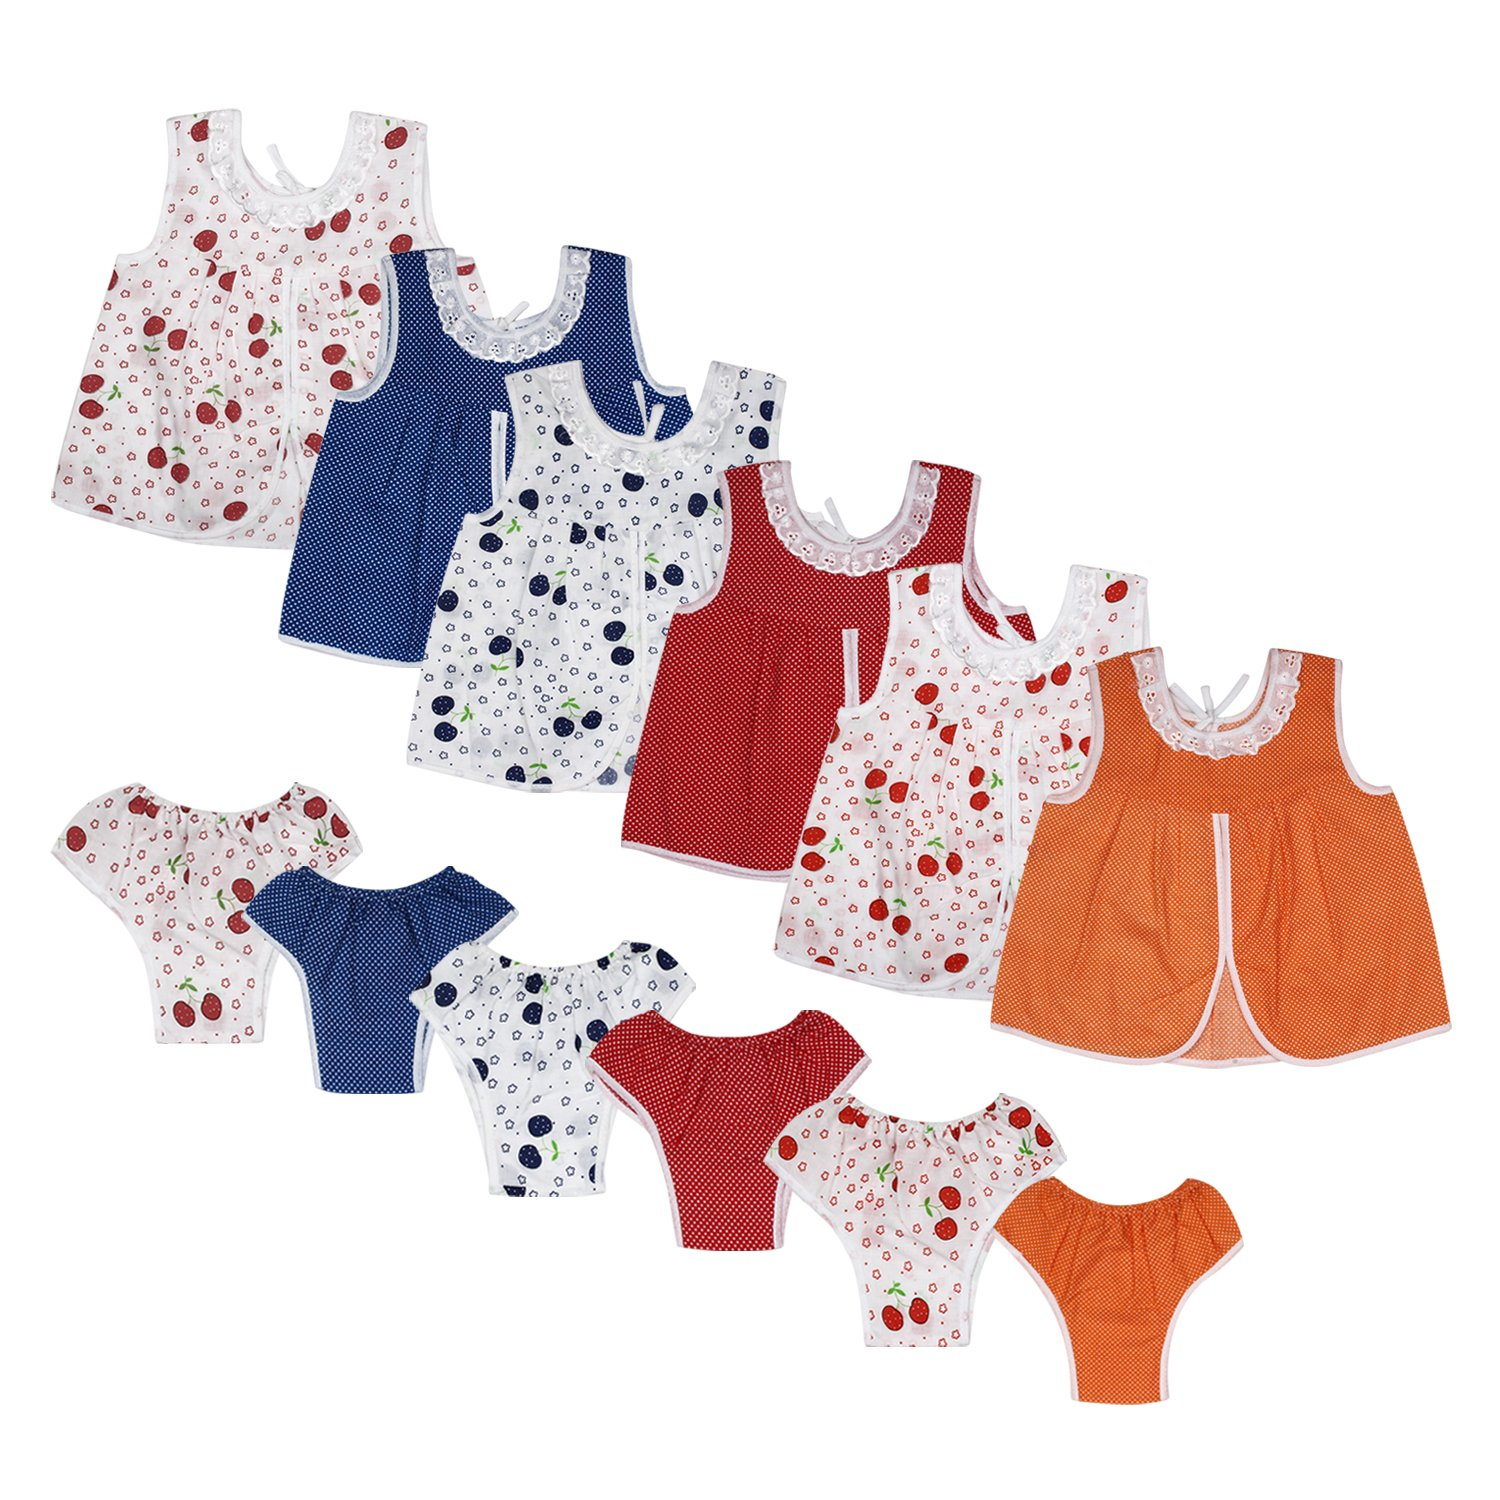 Littly Baby Girls' Cotton Clothing Set, 12 Pieces